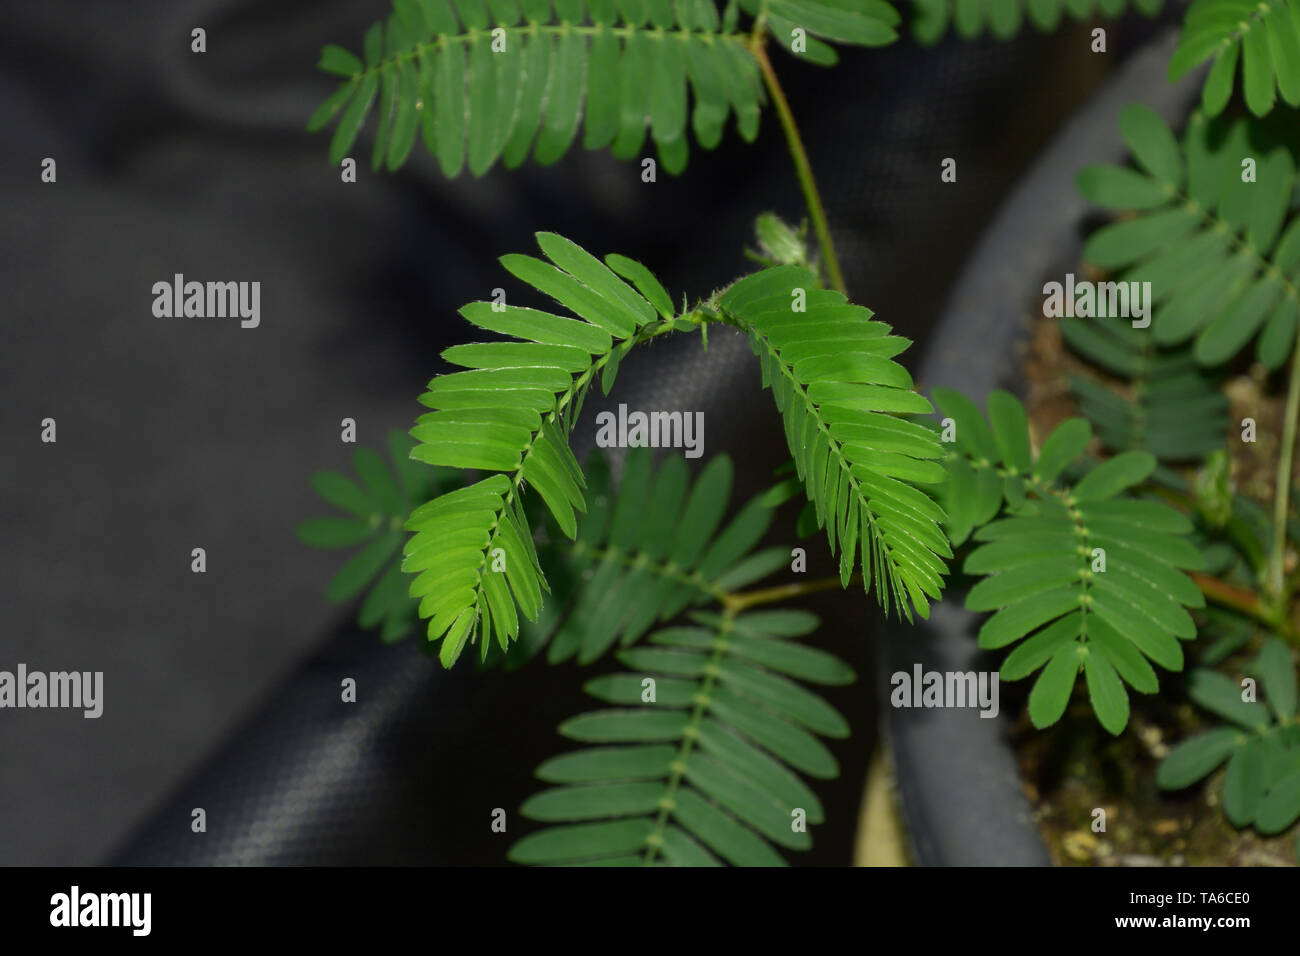 sensitive mimosa pudica or sleepy plant or dormilones or zombie plant with contact hairs that move when touched, touch me not plant macro shot Stock Photo